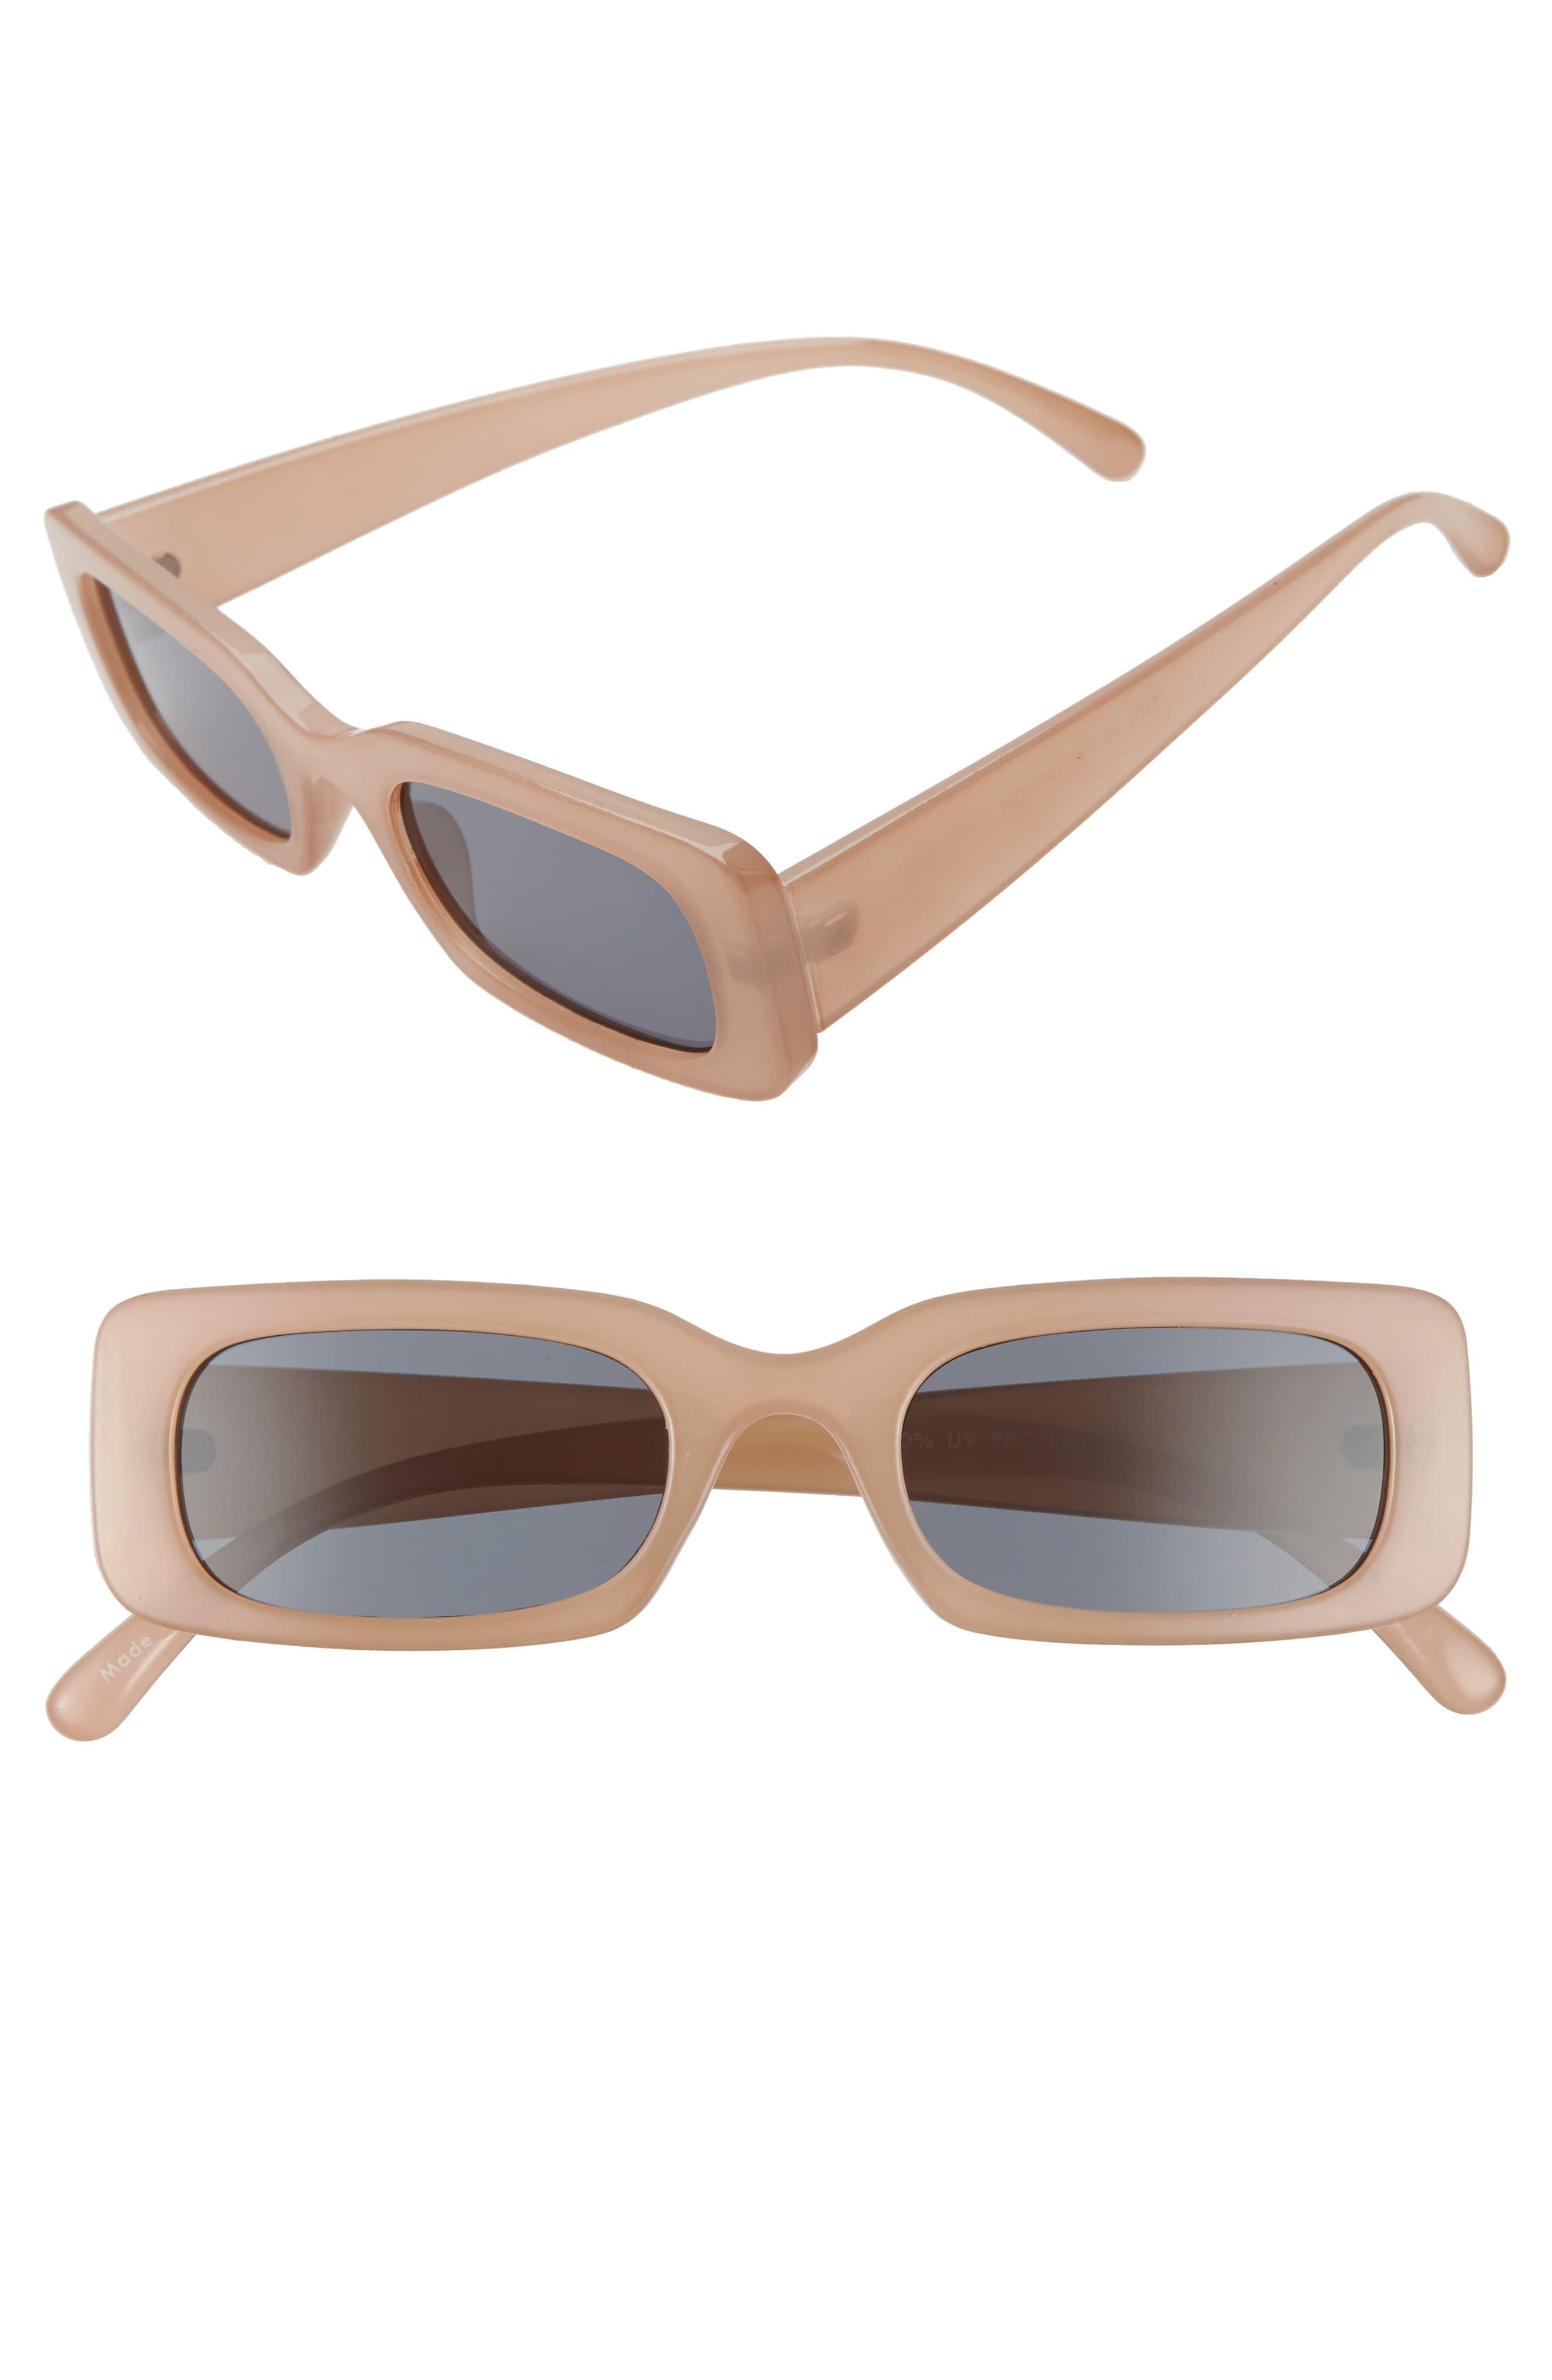 BP. 49mm Rounded Rectangular Sunglasses - Nude - Lyst